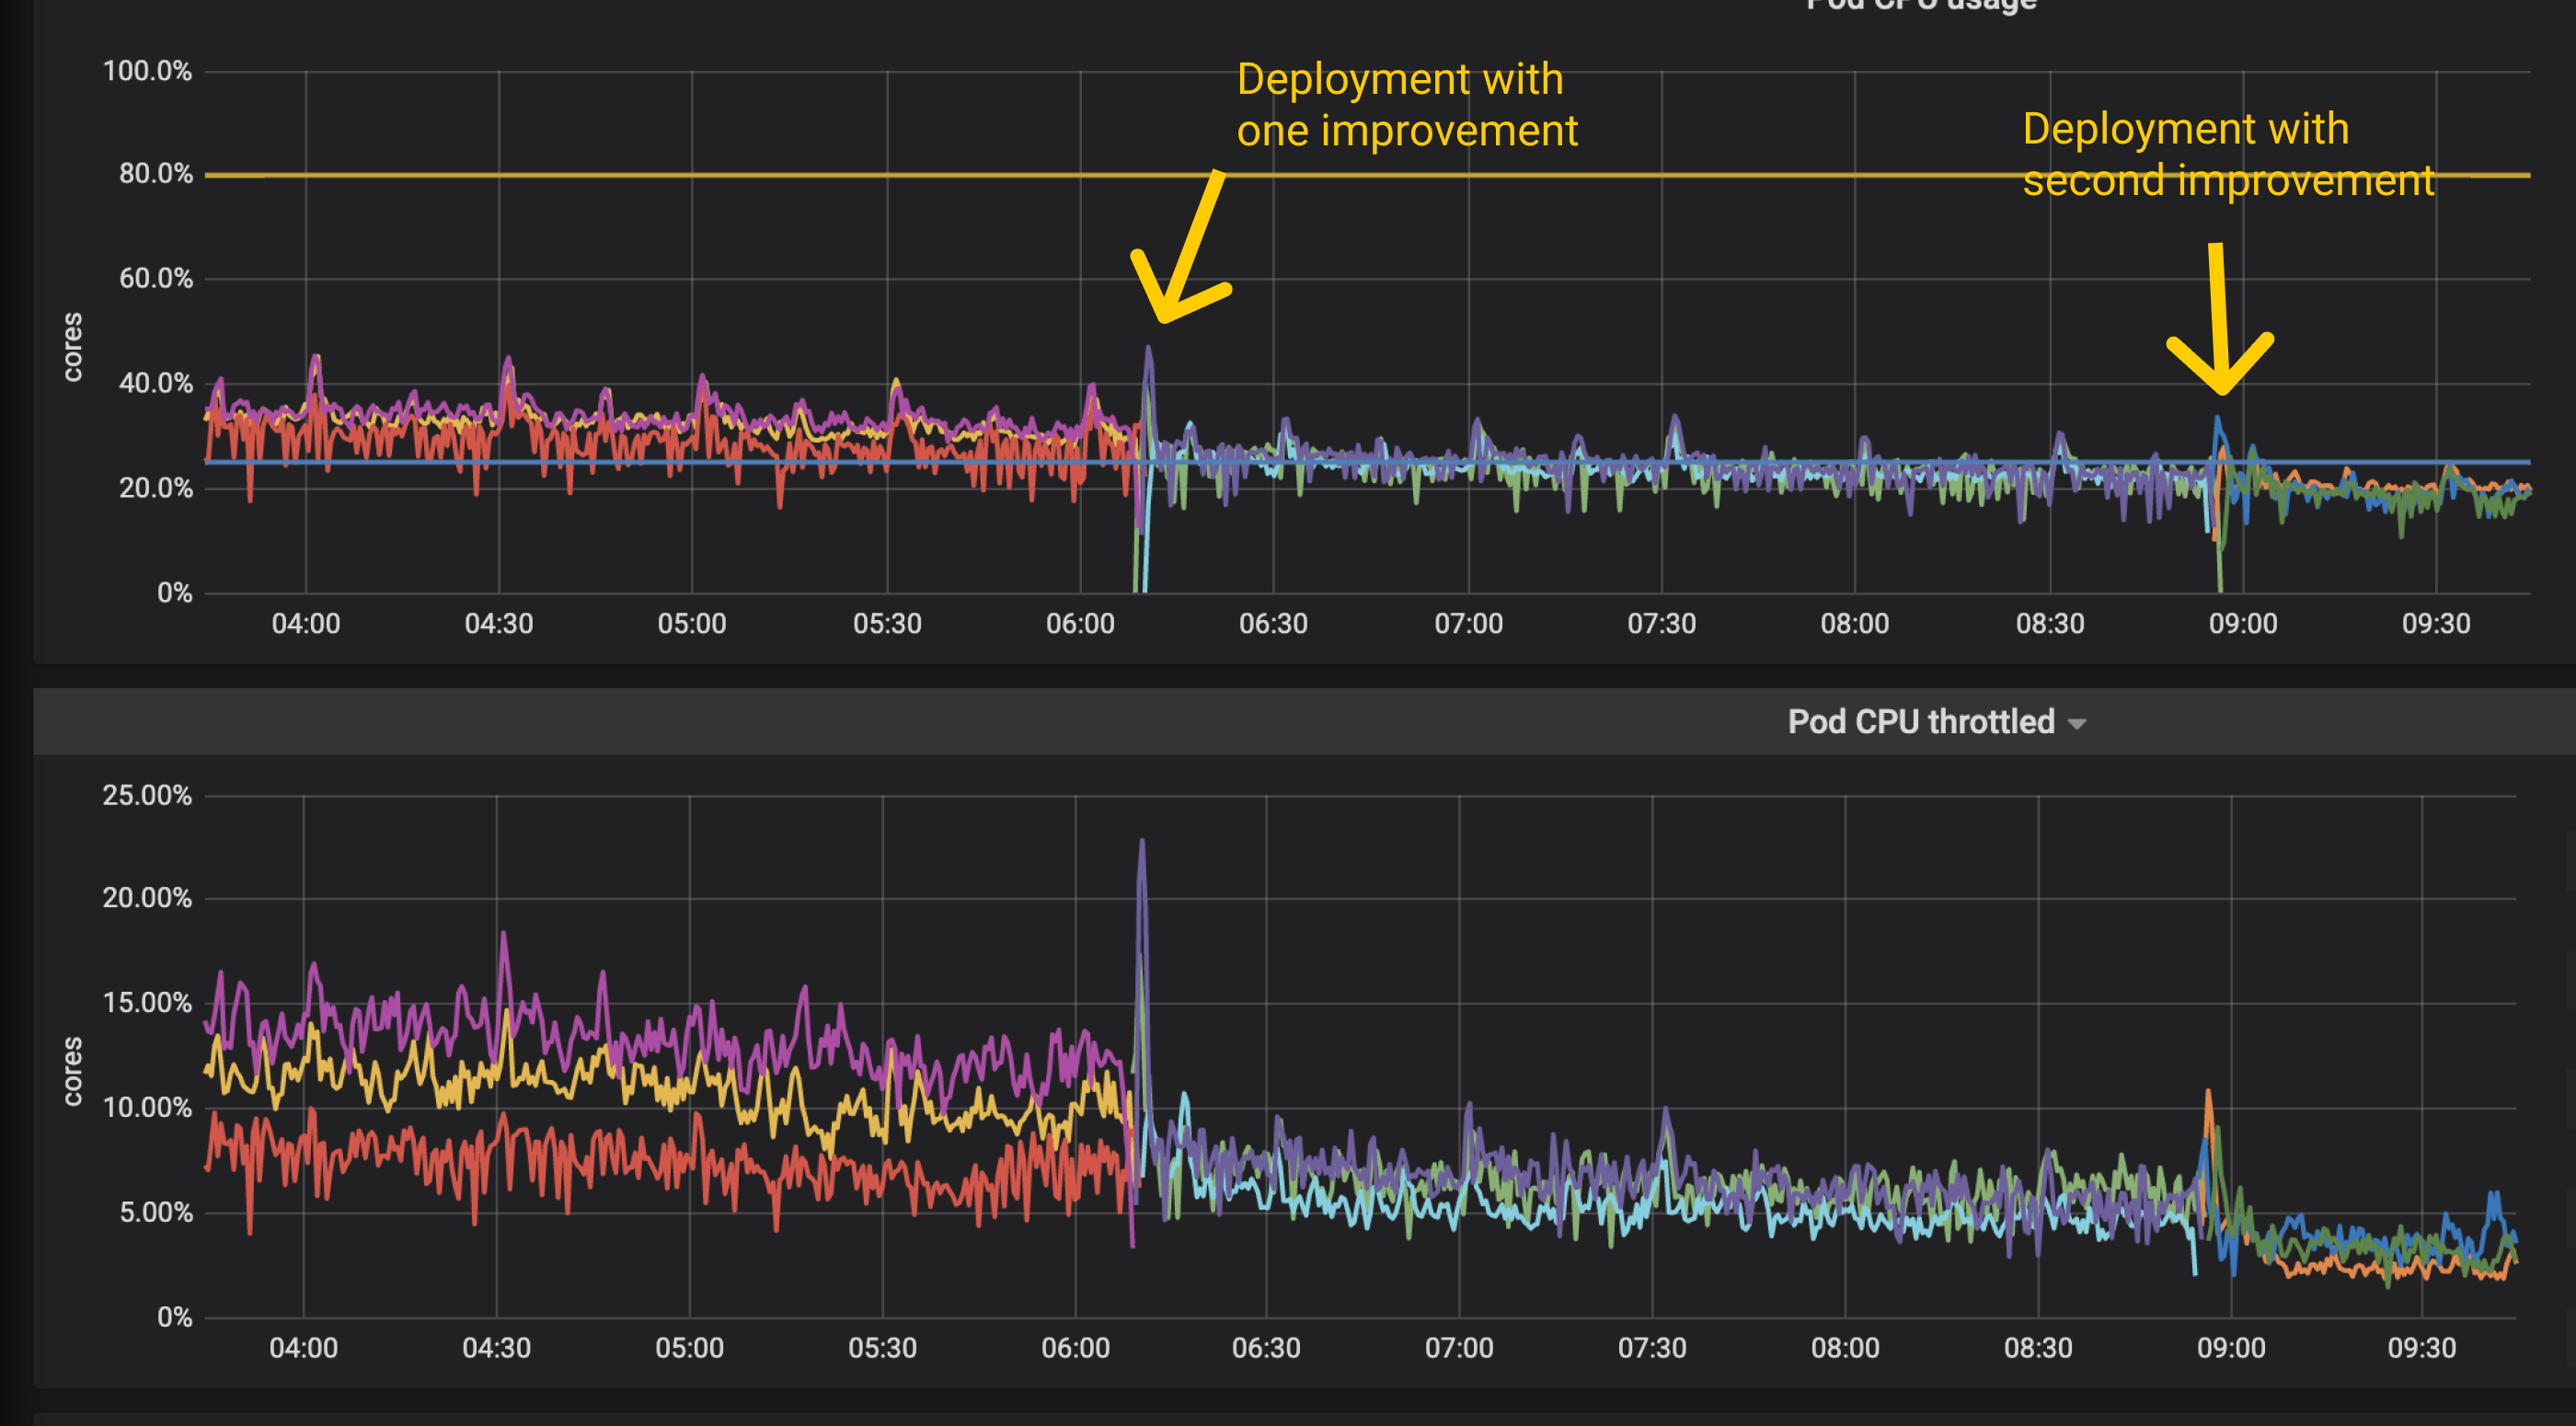 Graph of CPU usage of service pods reducing after deploying improved code